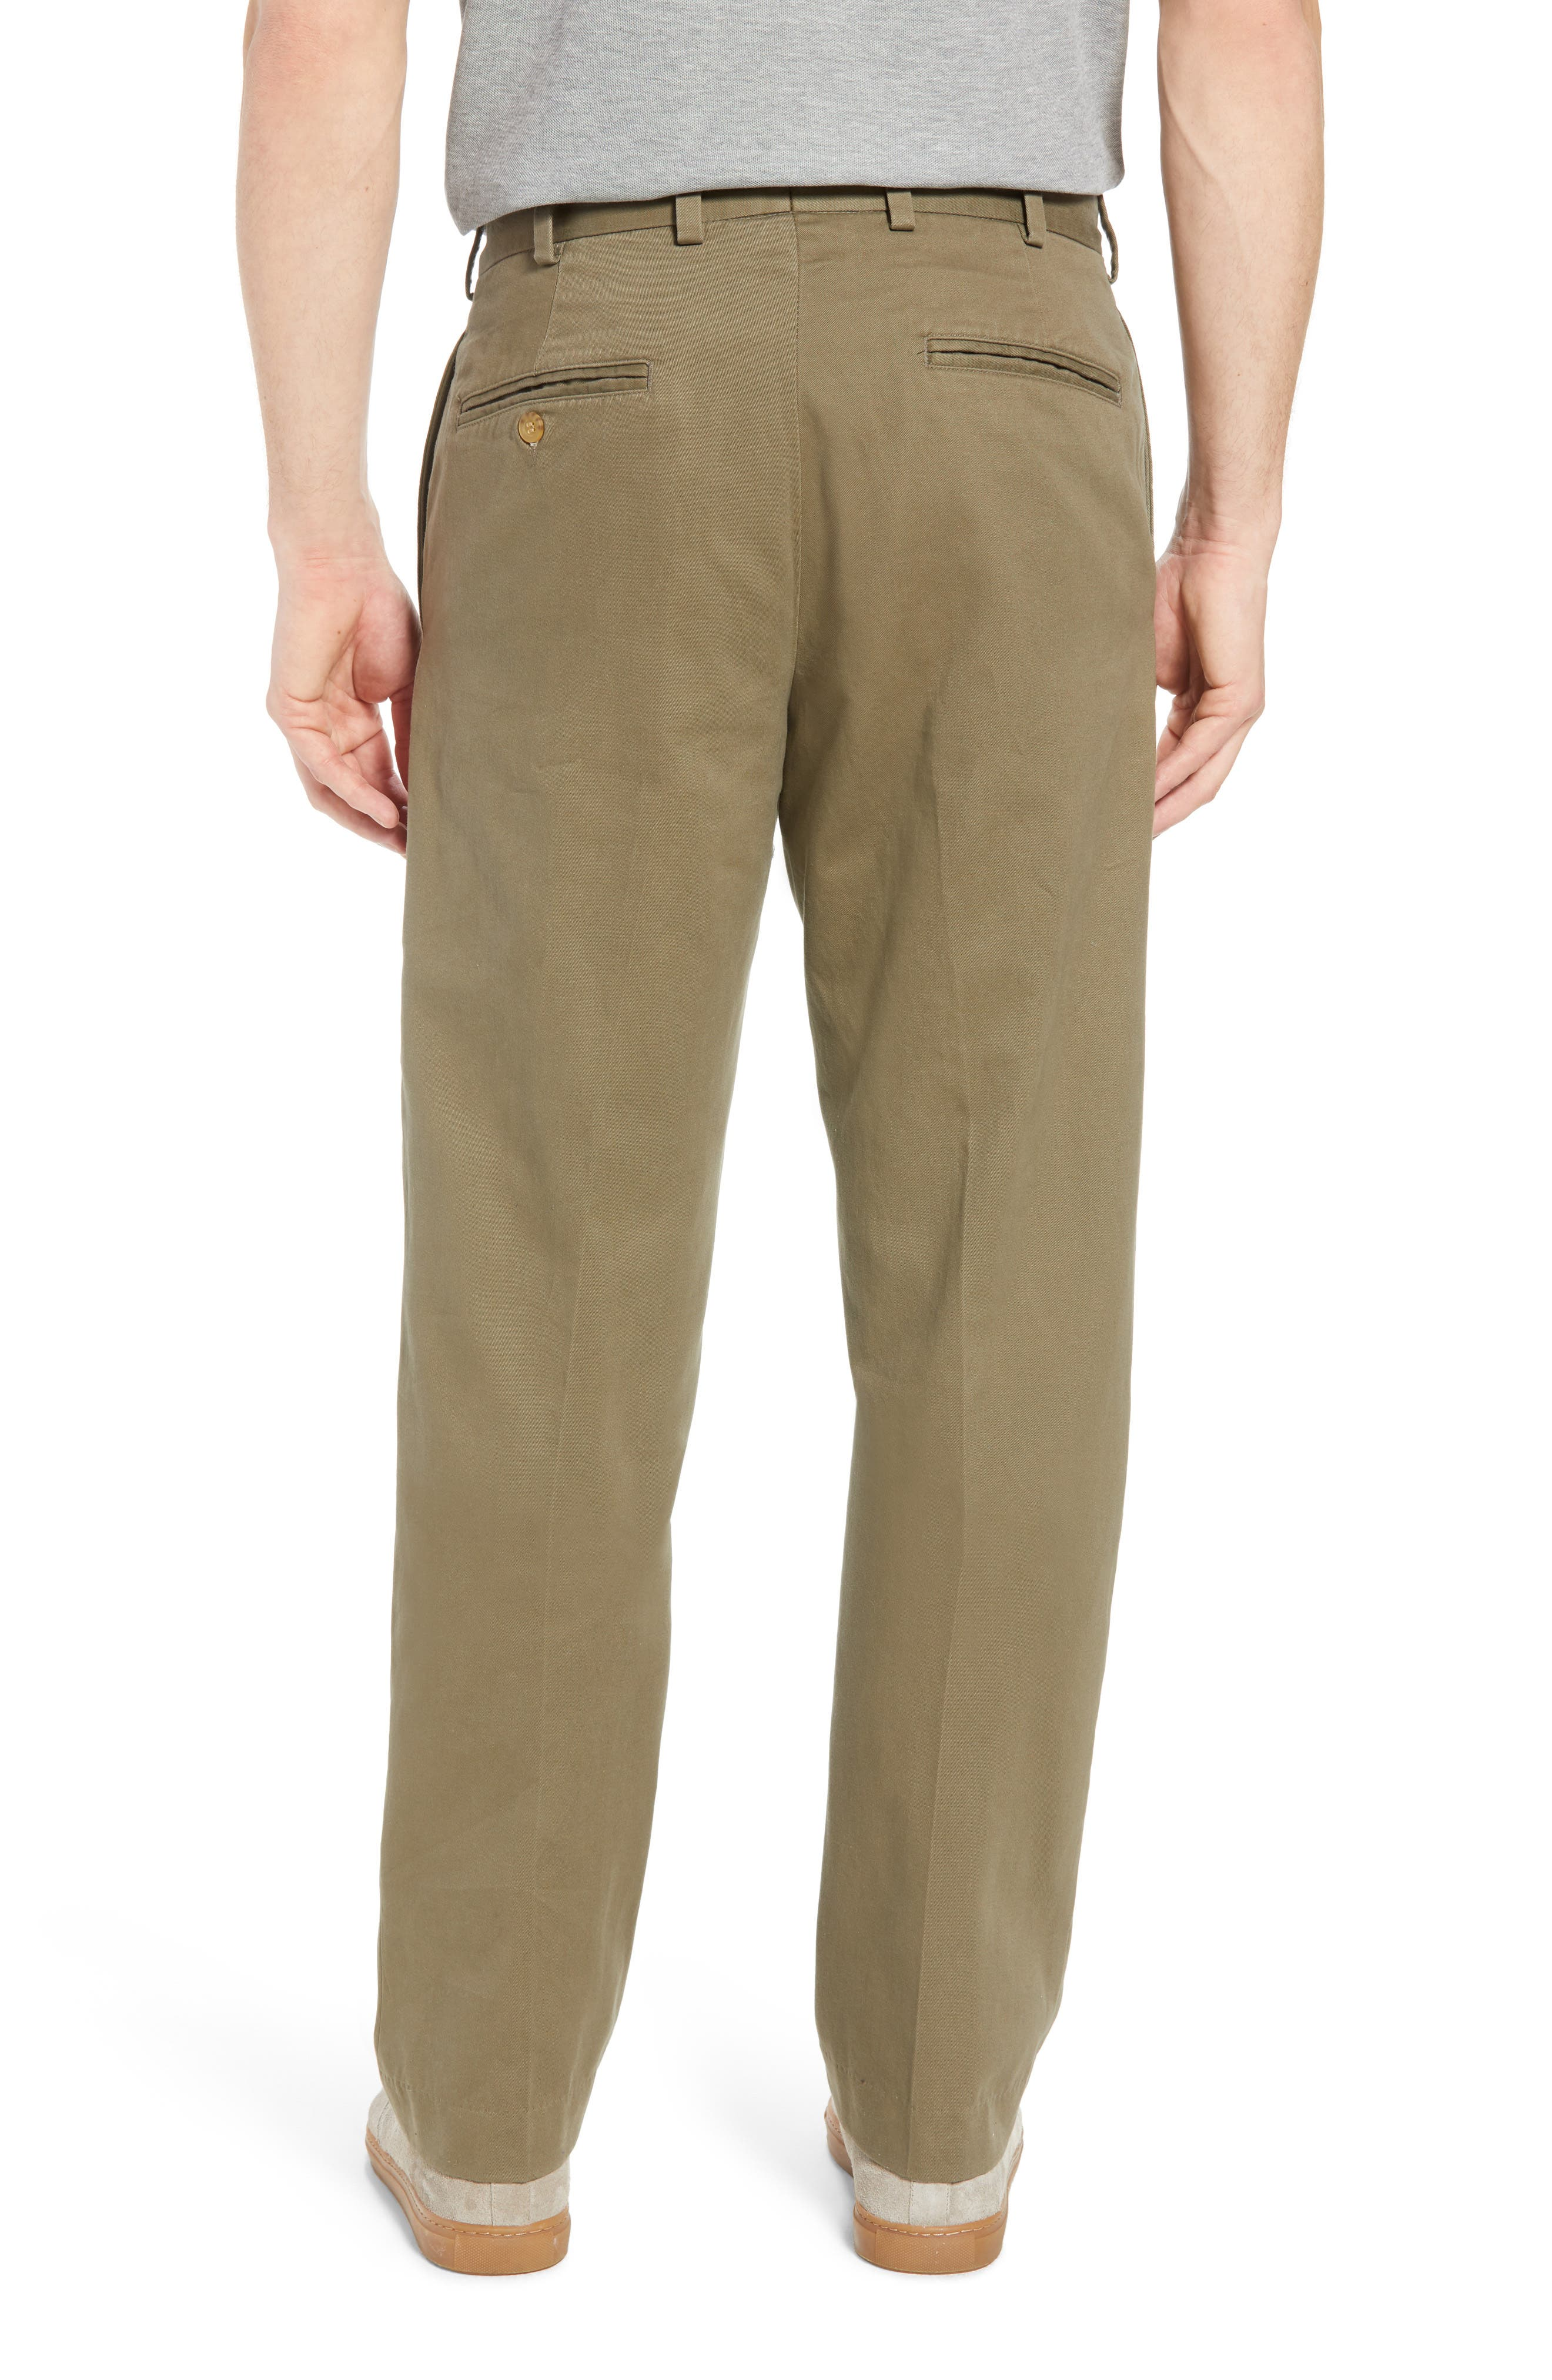 M2 Classic Fit Flat Front Vintage Twill Pants,                             Alternate thumbnail 2, color,                             Olive